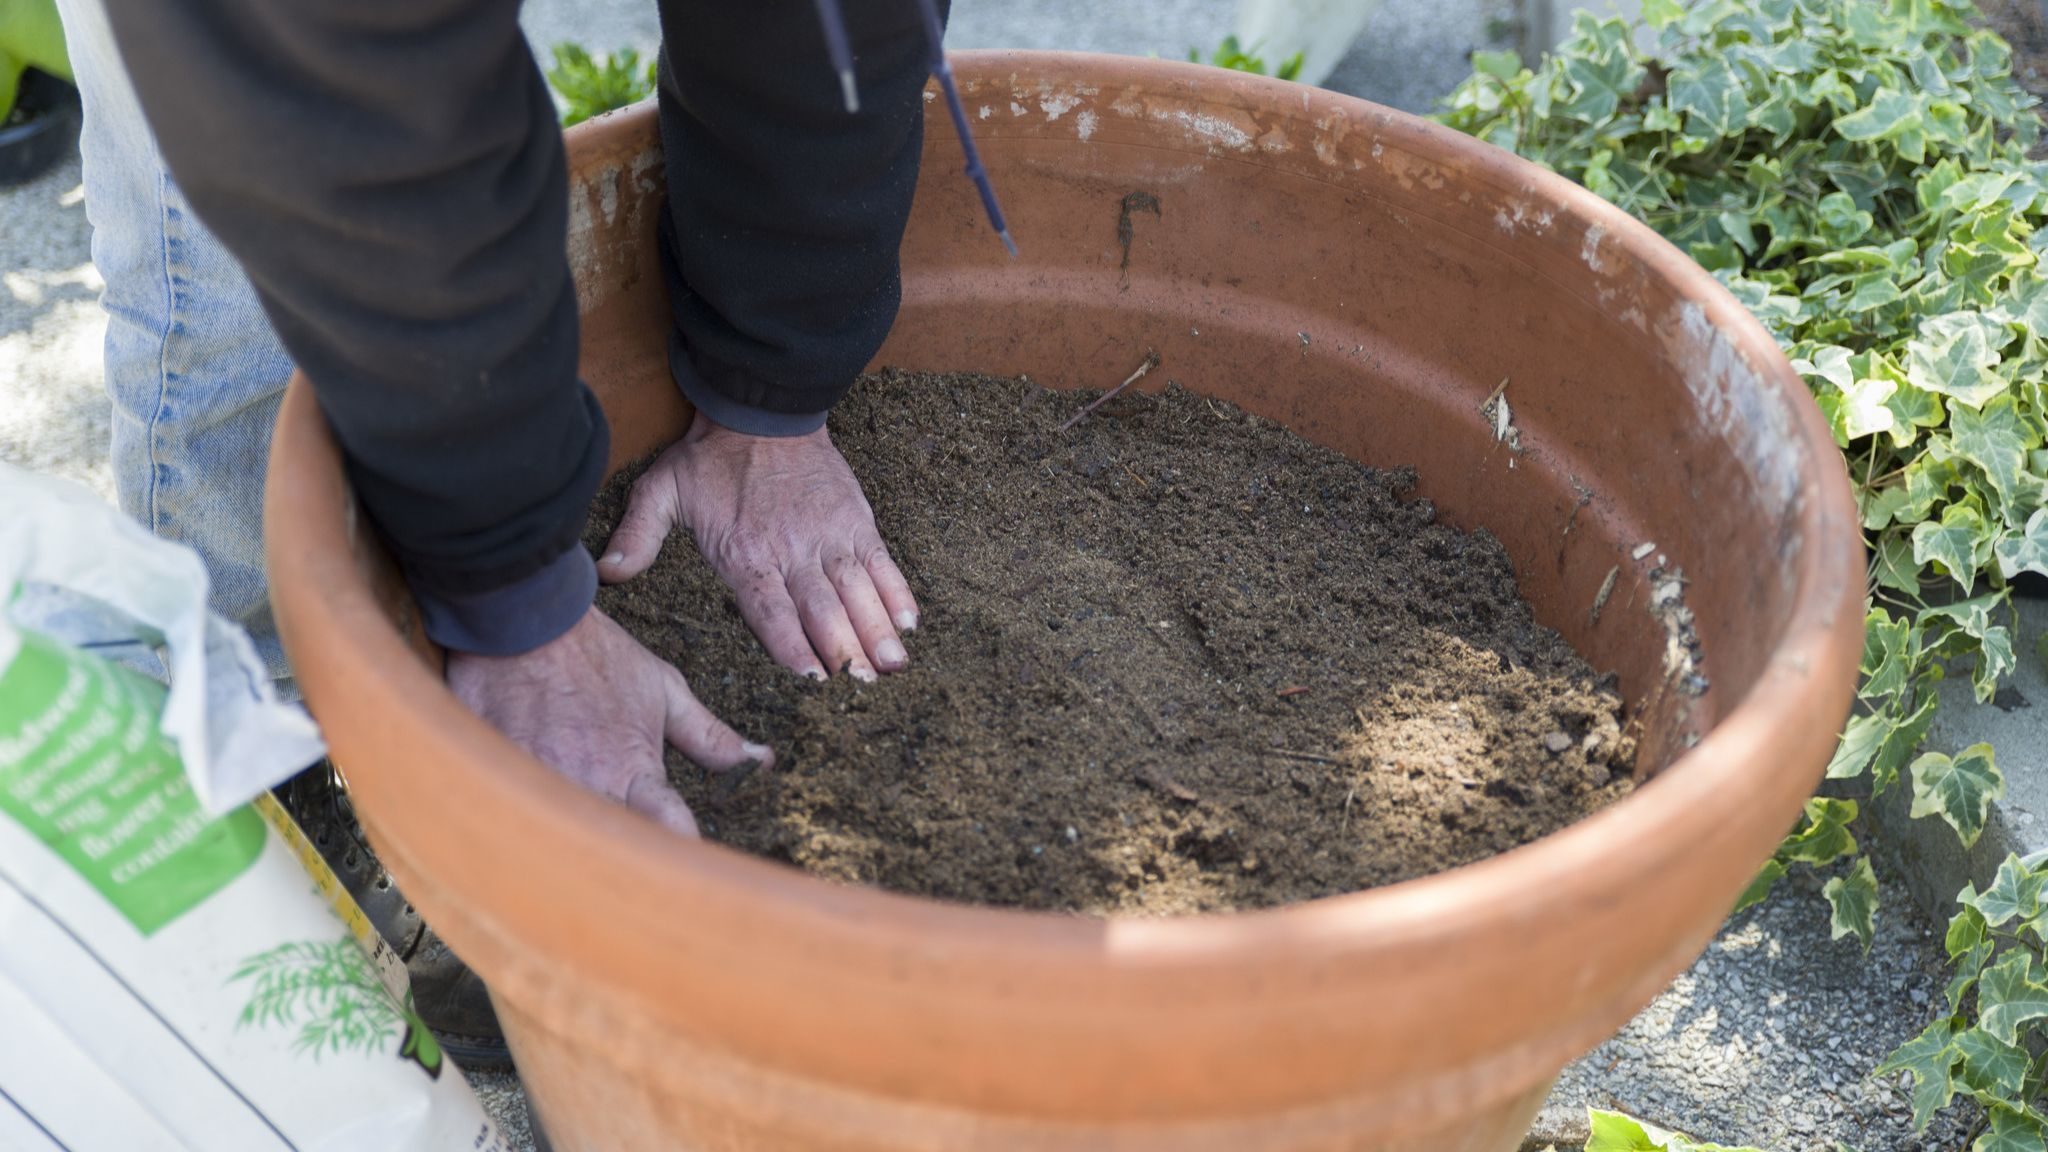 Pick garden containers that fit your taste and space — but ensure they drain properly